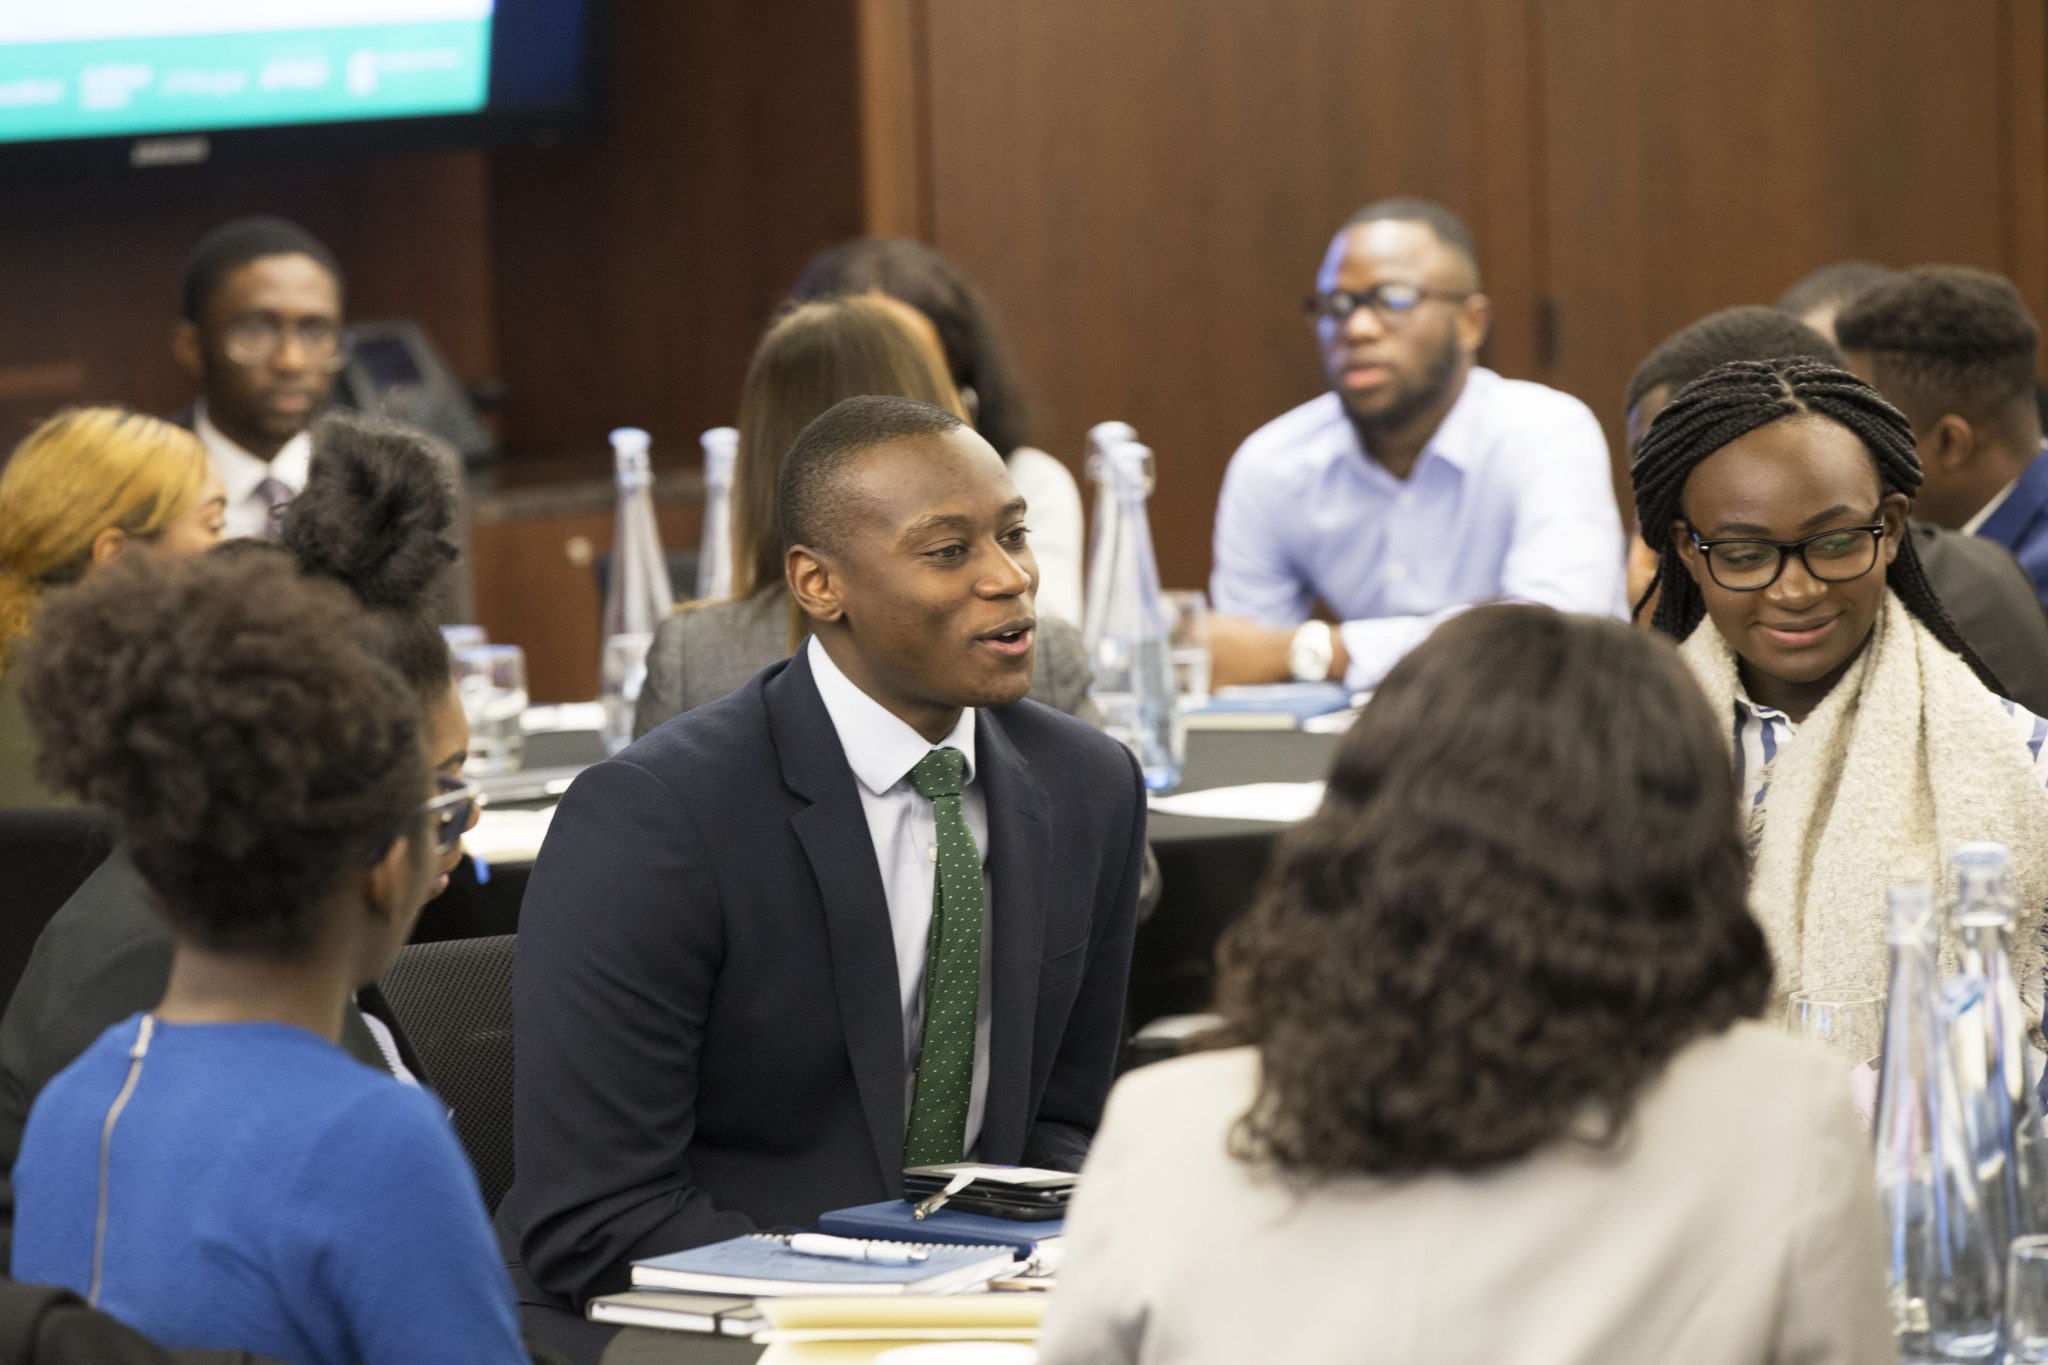 Group of diverse students engaging in conversation during an Uncovering Prospects event